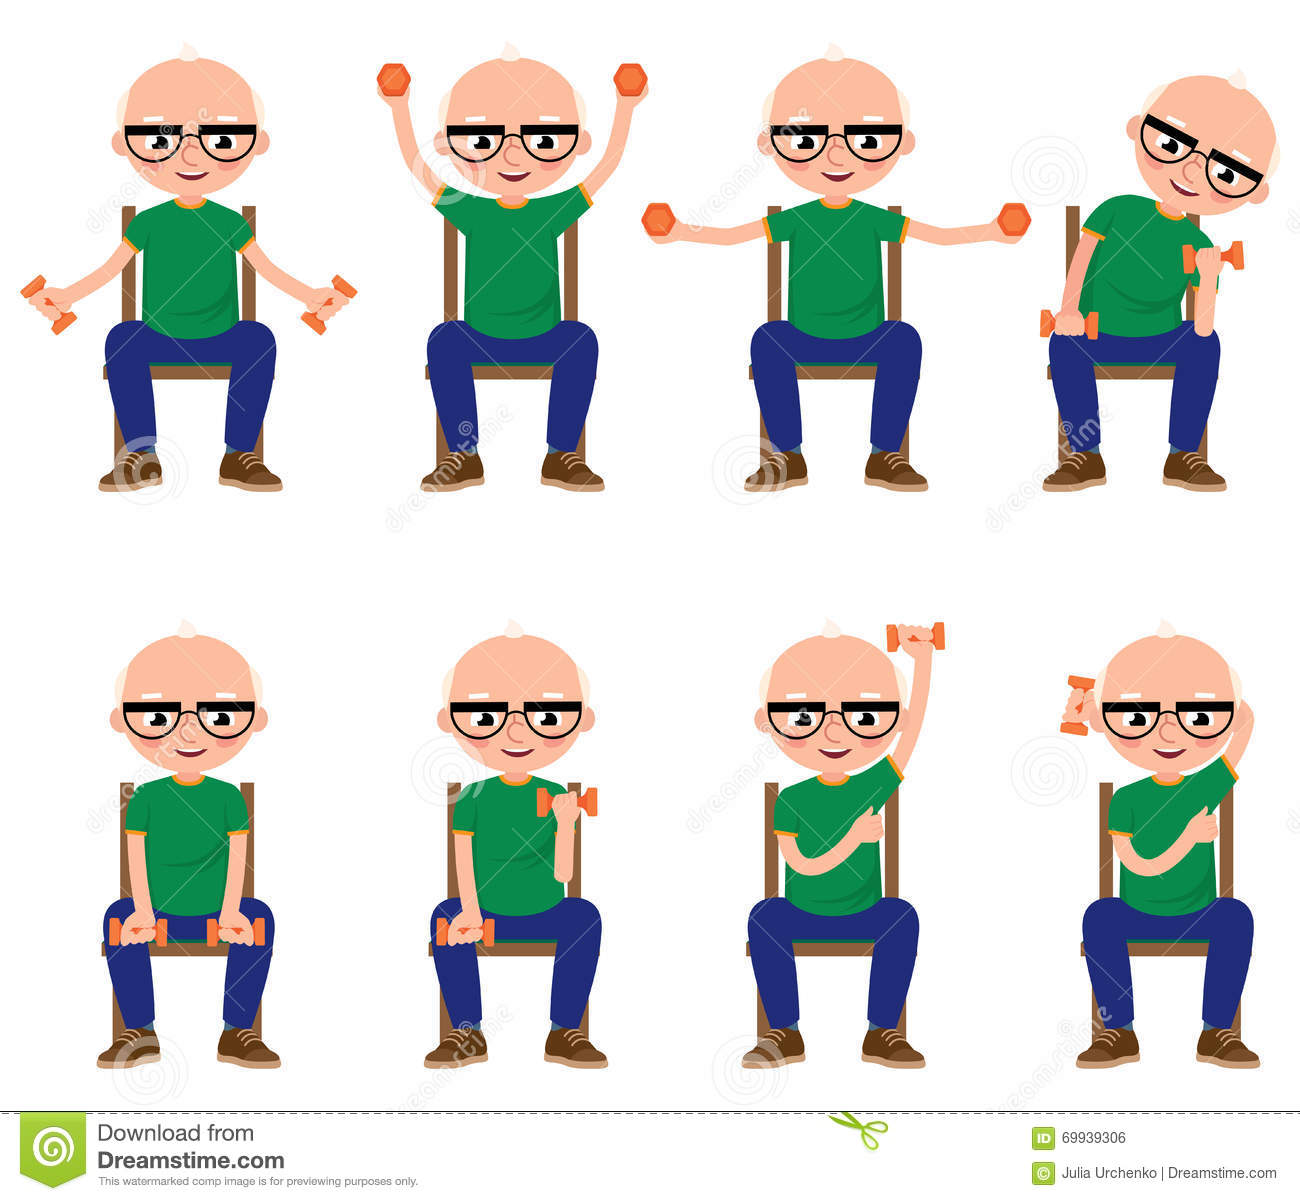 Chair exercises for seniors - Royalty Free Vector Download Senior Man Doing Exercises